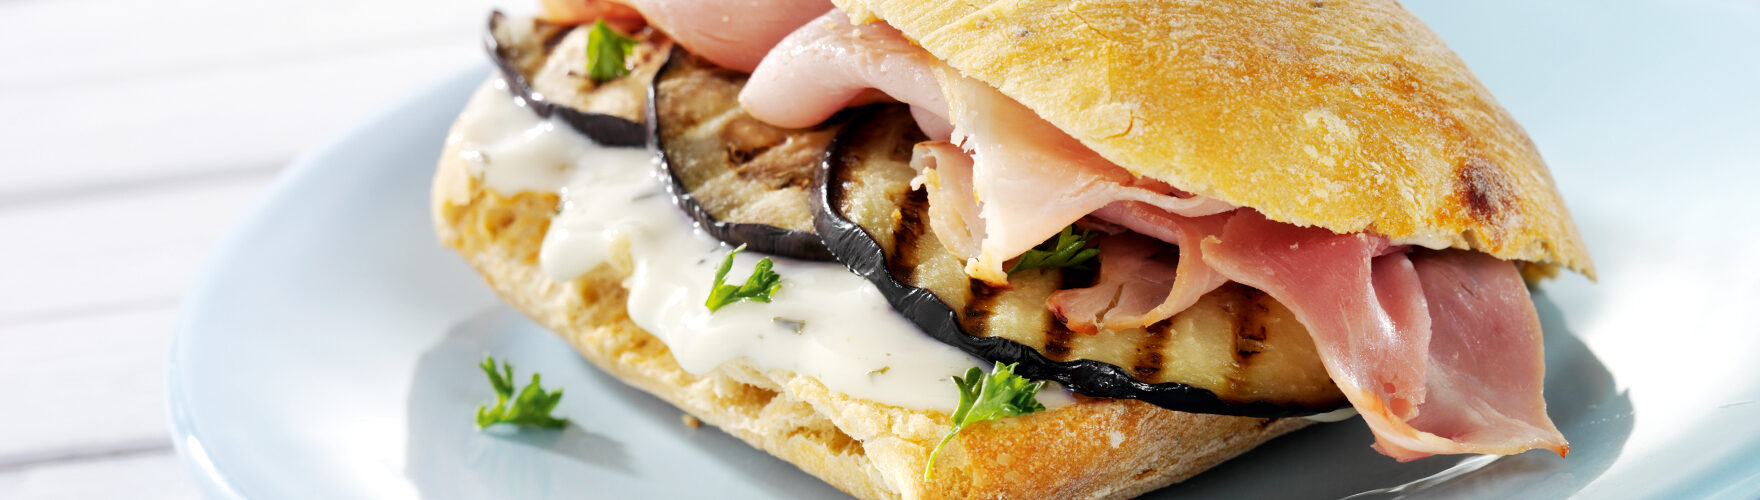 Ciabatta roll with ham, roasted aubergine and fresh herbs